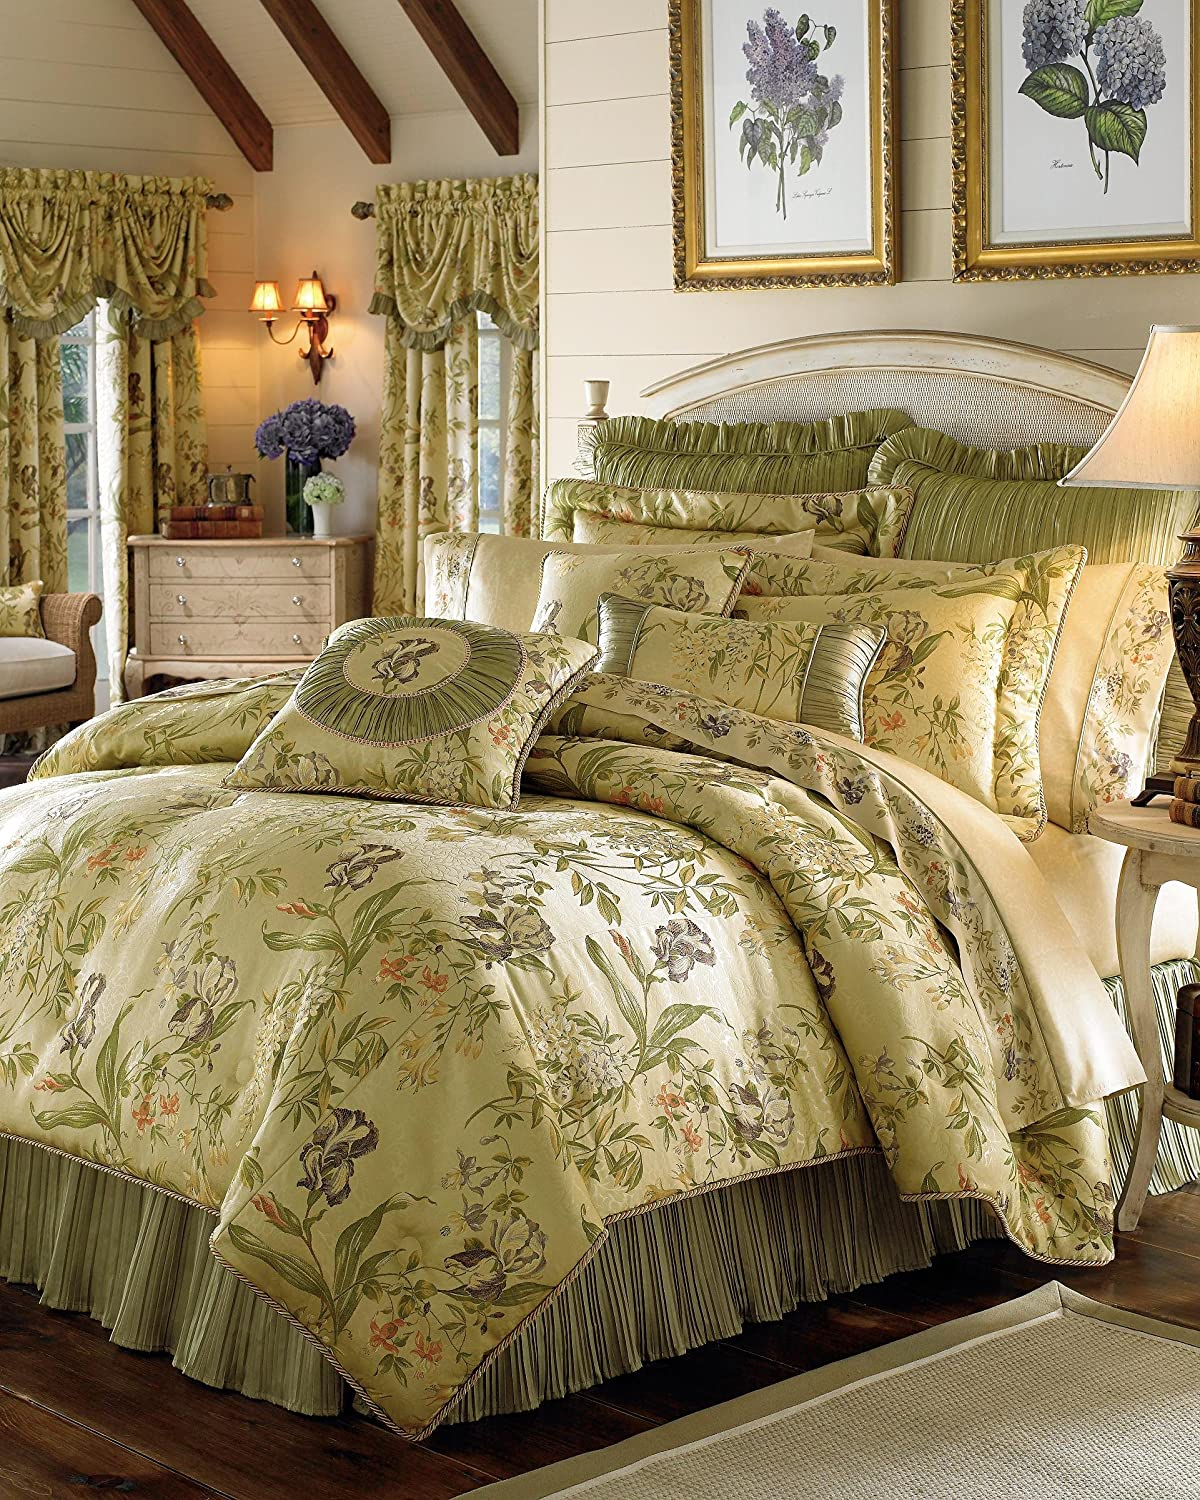 Croscill Iris Comforter Set, Queen, Multi